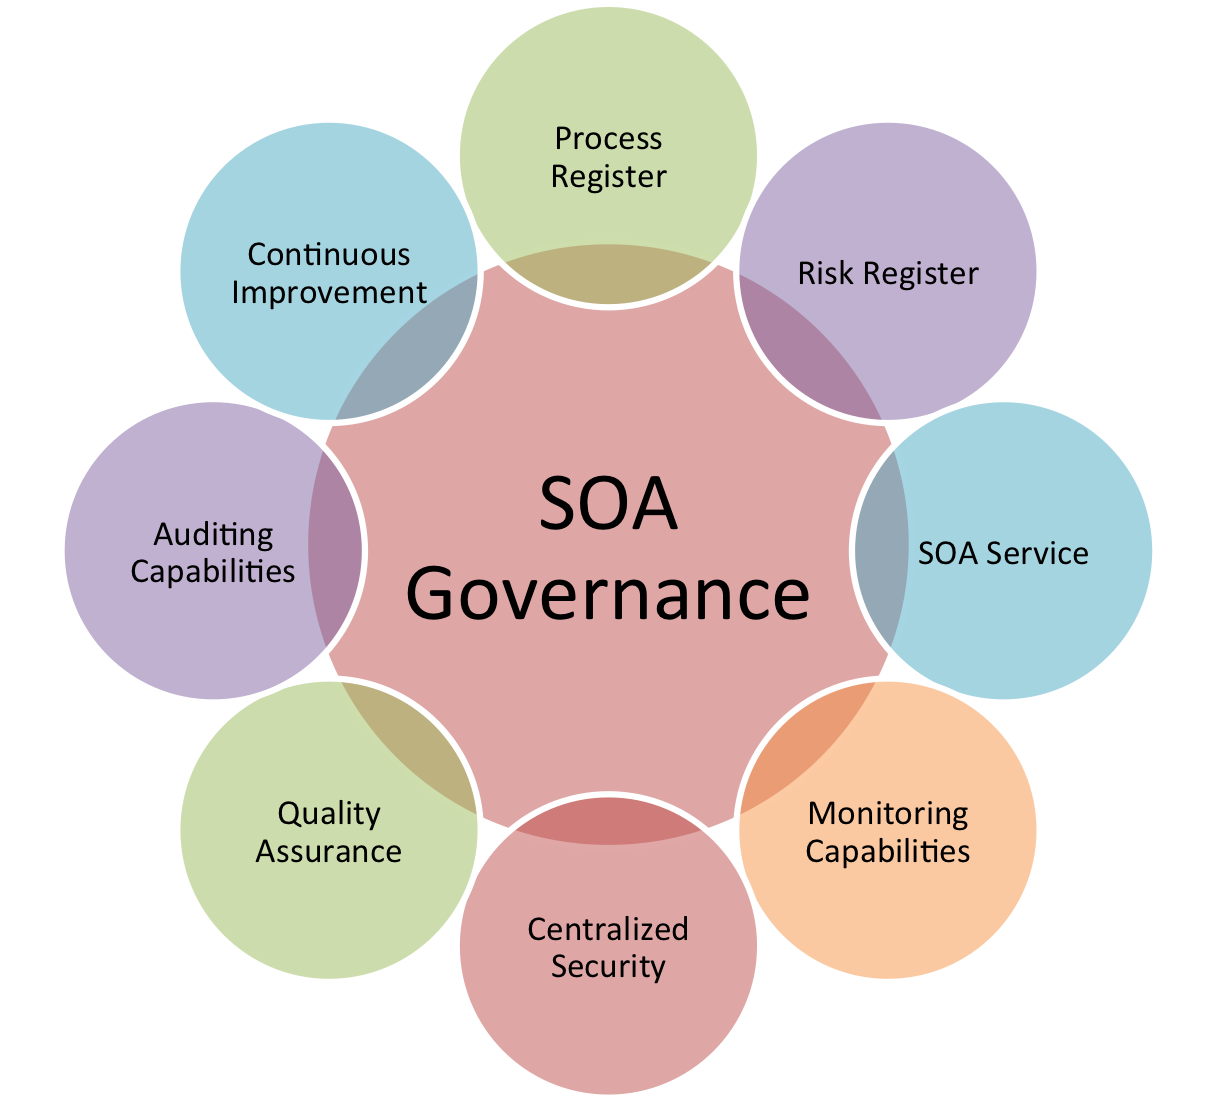 How To Establish SOA Governance In Your Organization